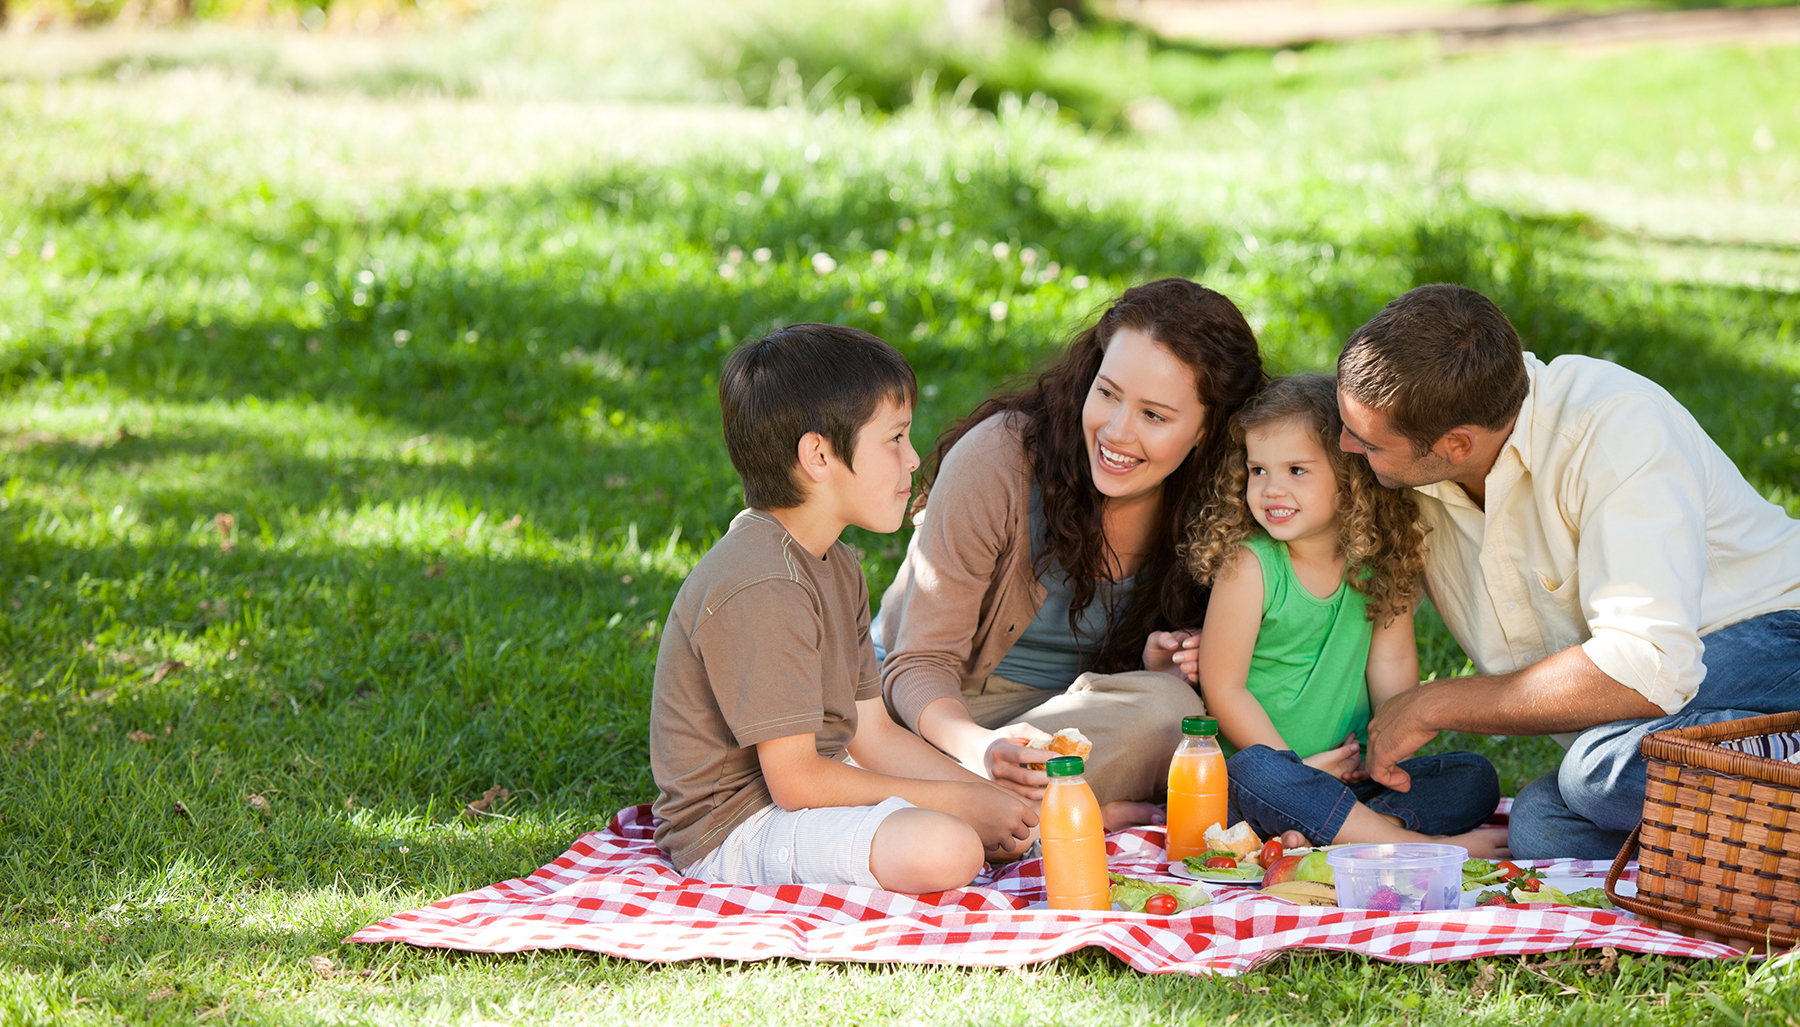 family-picnic-outdoors-meals-summer.jpg -